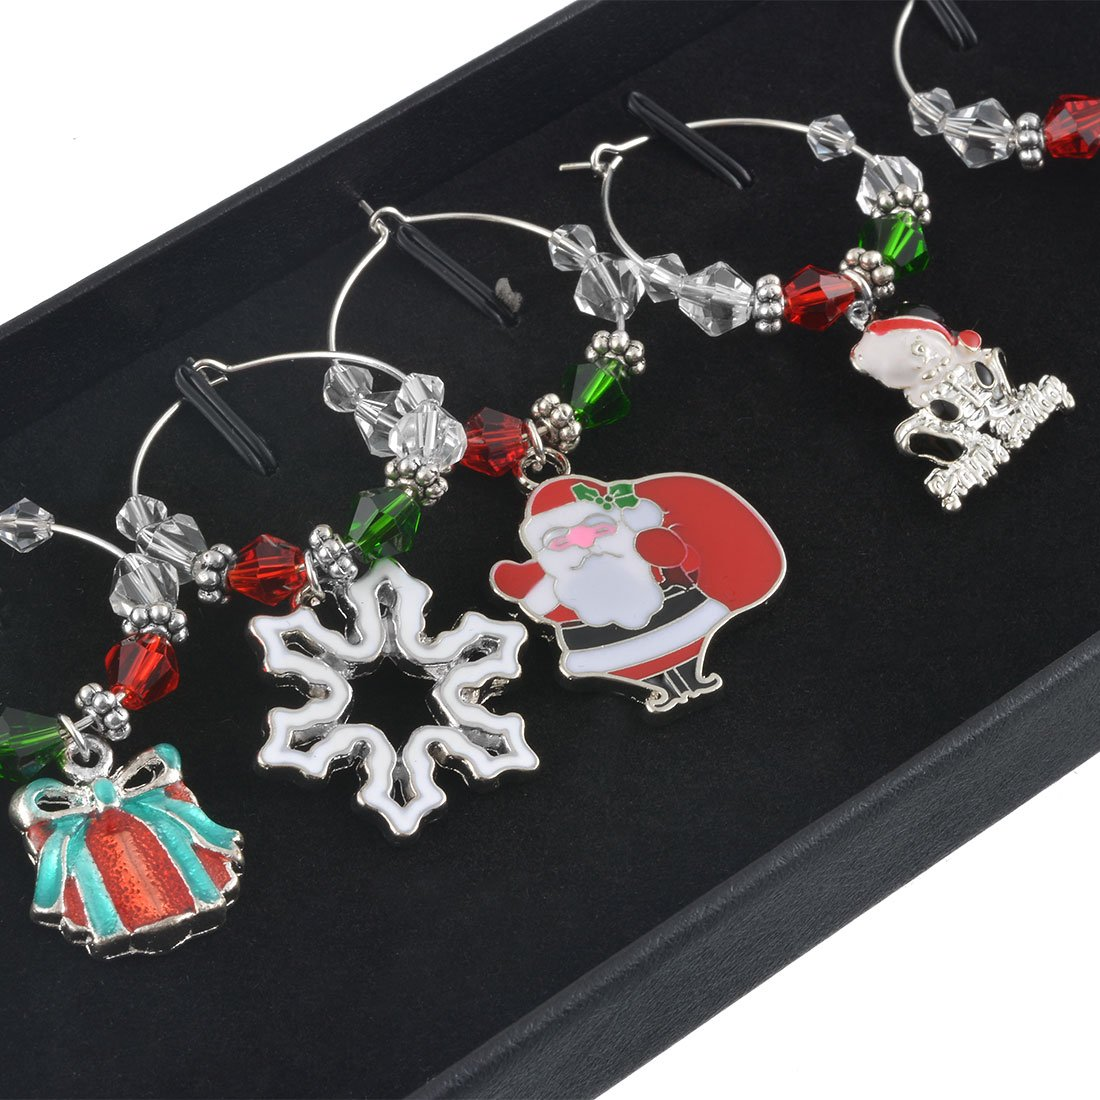 Souarts Mixed 6pcs Glass Charms Marker Tags Set with Gift Box Christmas Father Elk Snowflake Gift Bell Pendants by Souarts (Image #1)